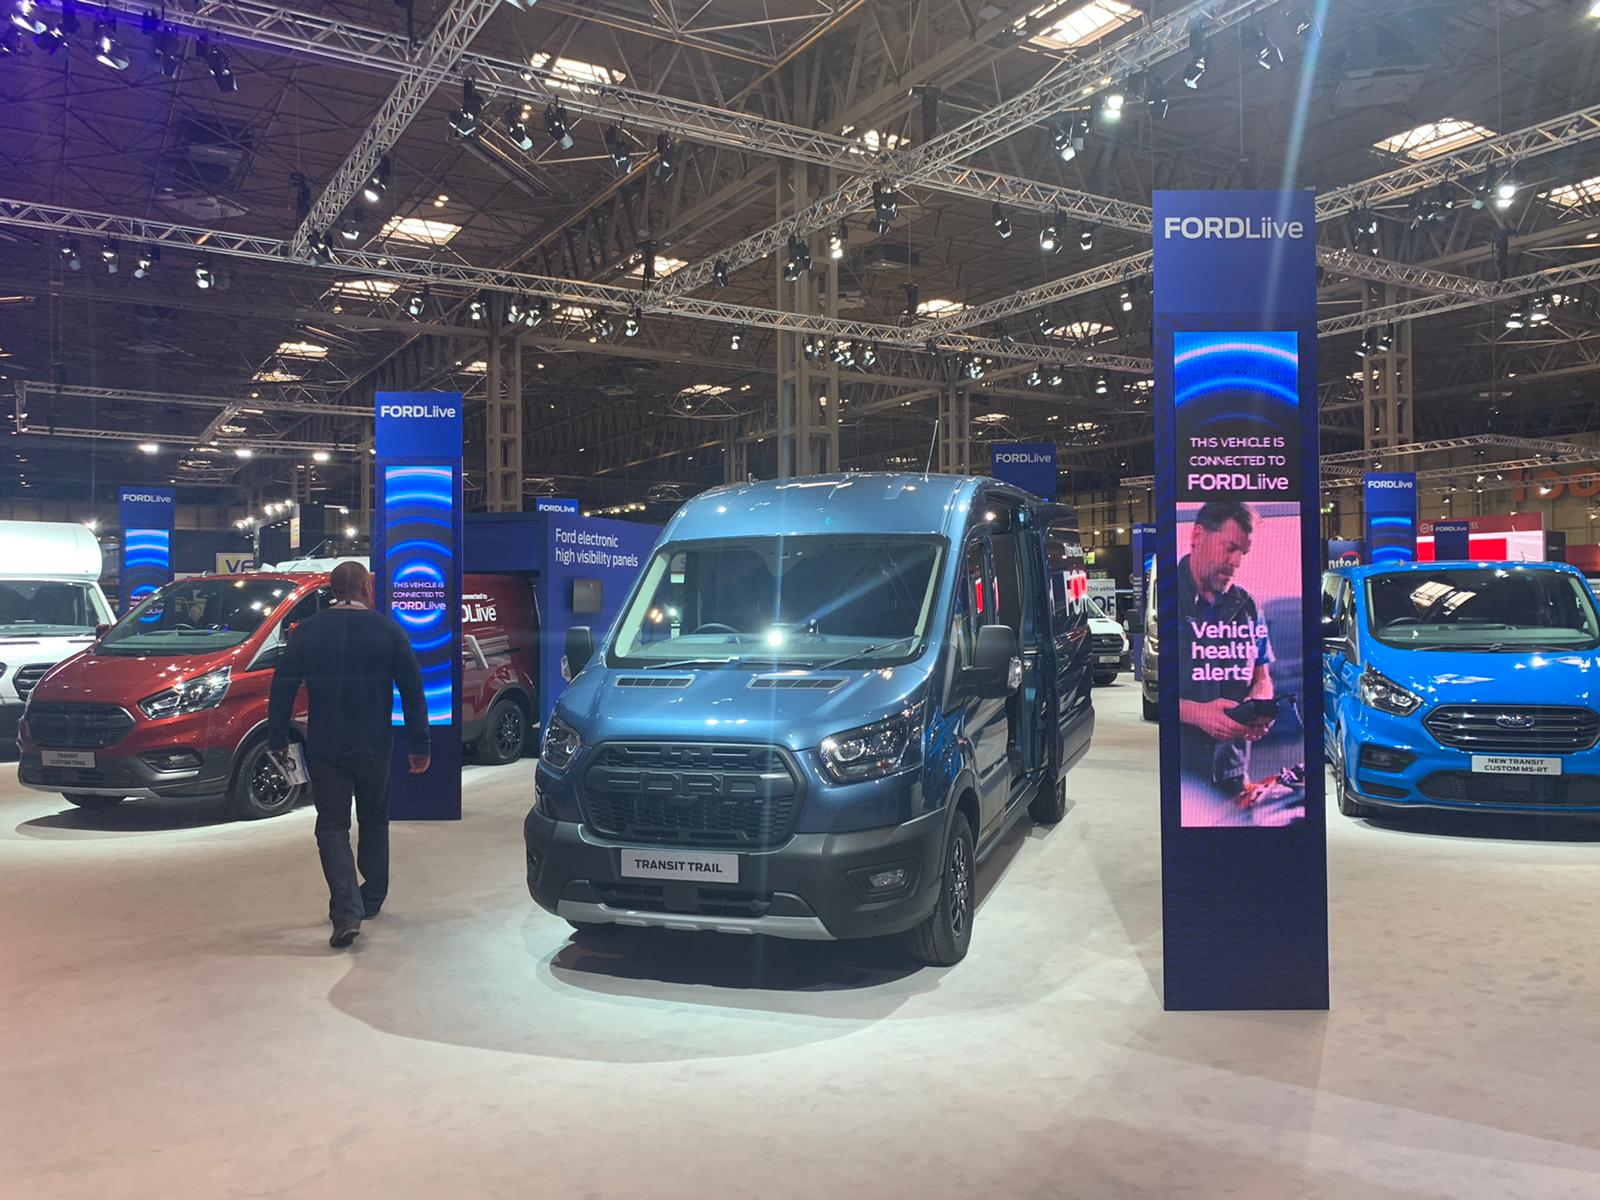 Ford Exhibition at NEC